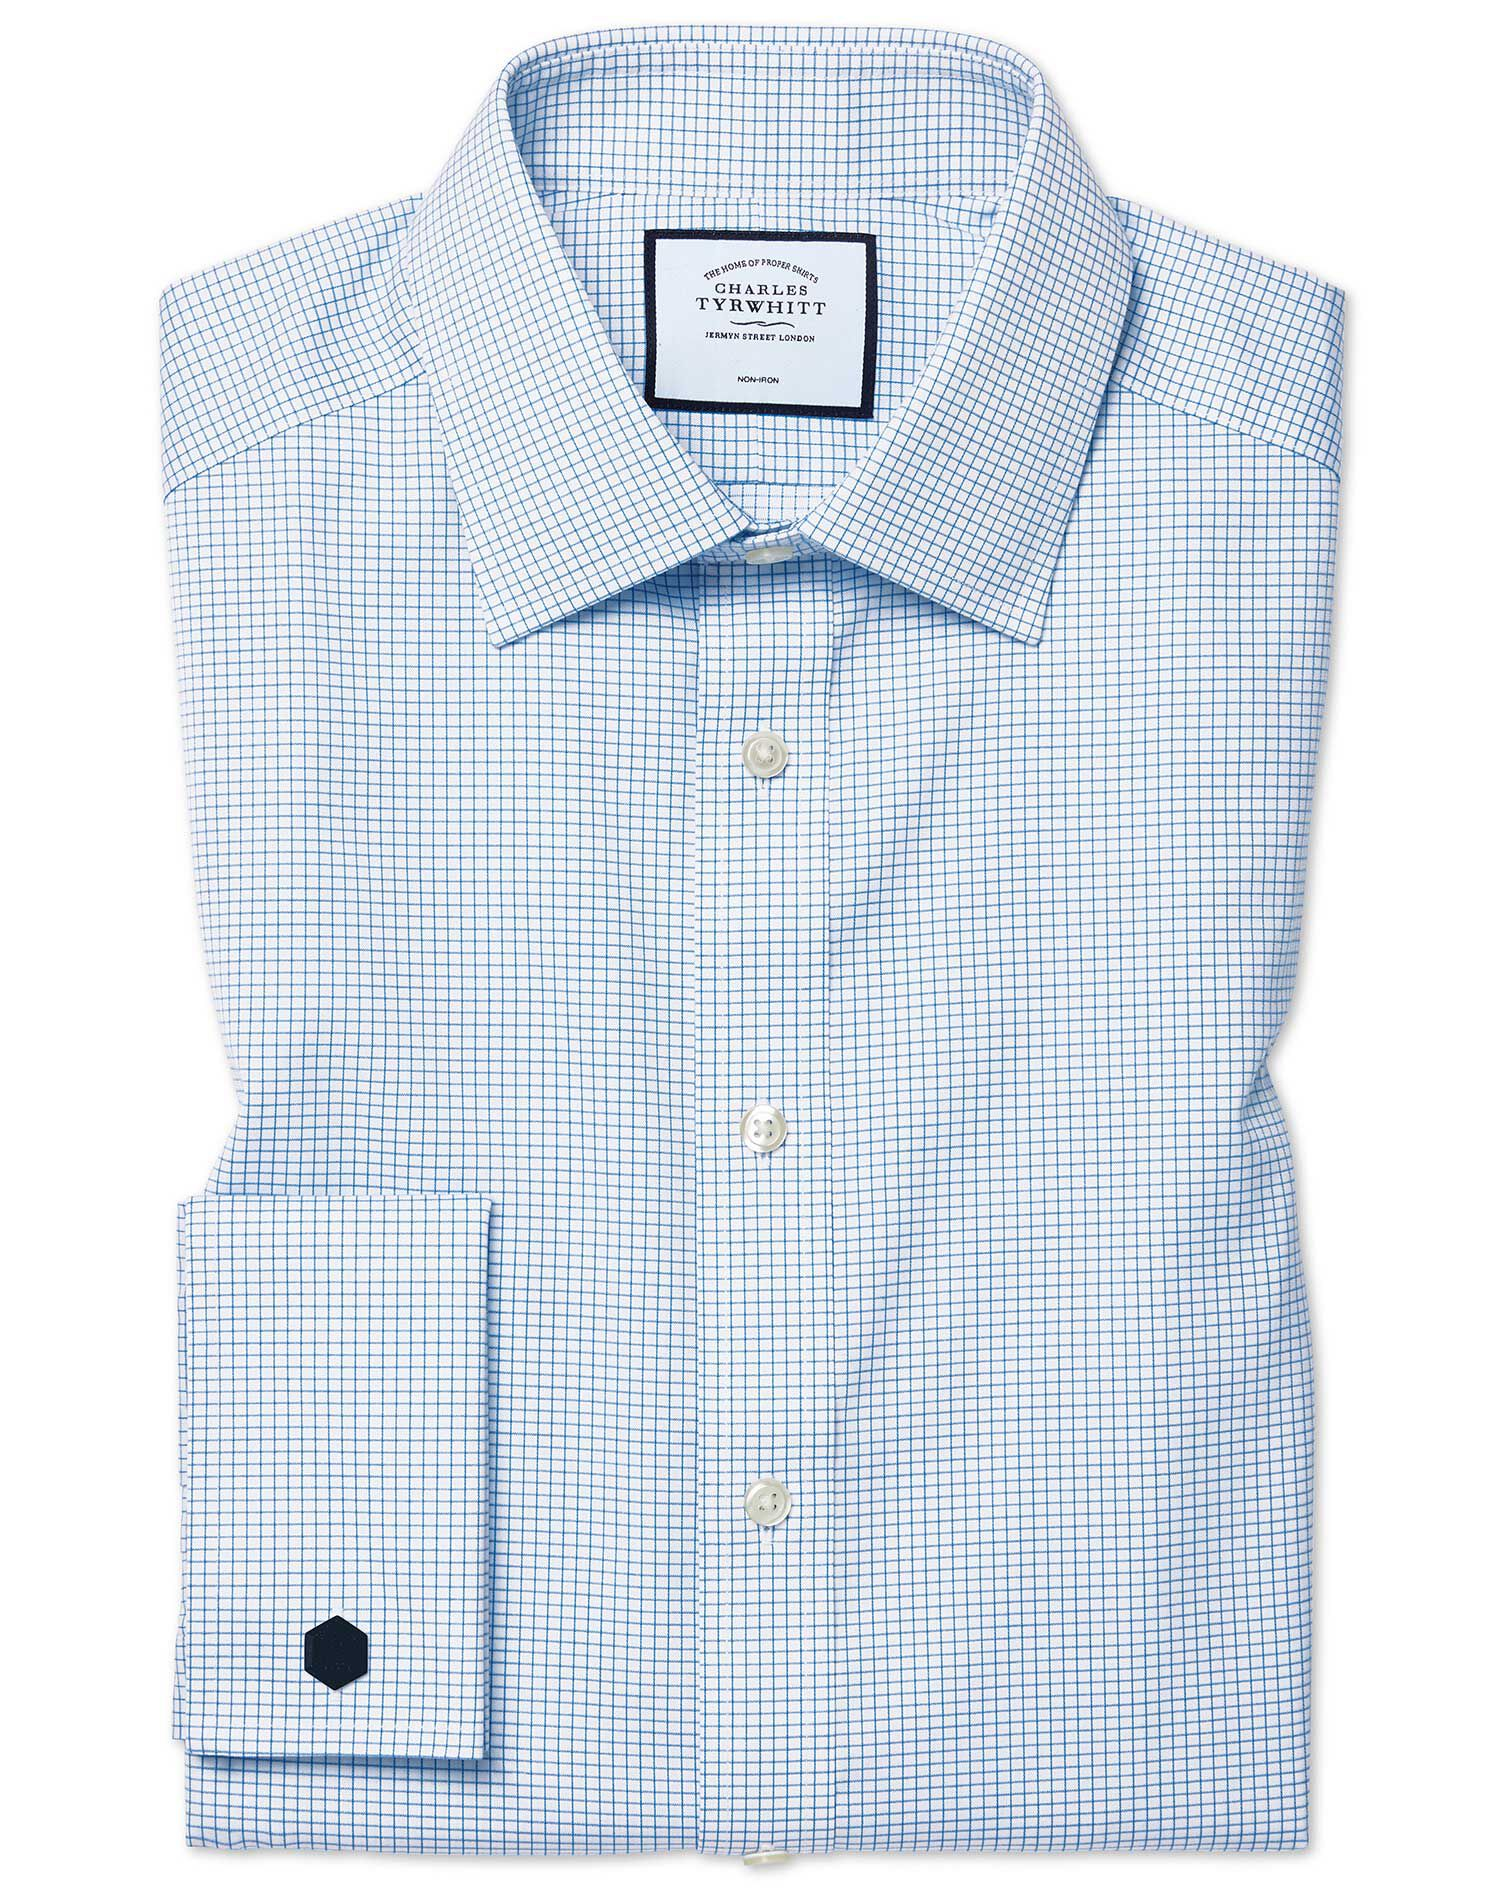 Slim Fit Non-Iron Twill Mini Grid Check Sky Blue Cotton Formal Shirt Double Cuff Size 16.5/33 by Cha